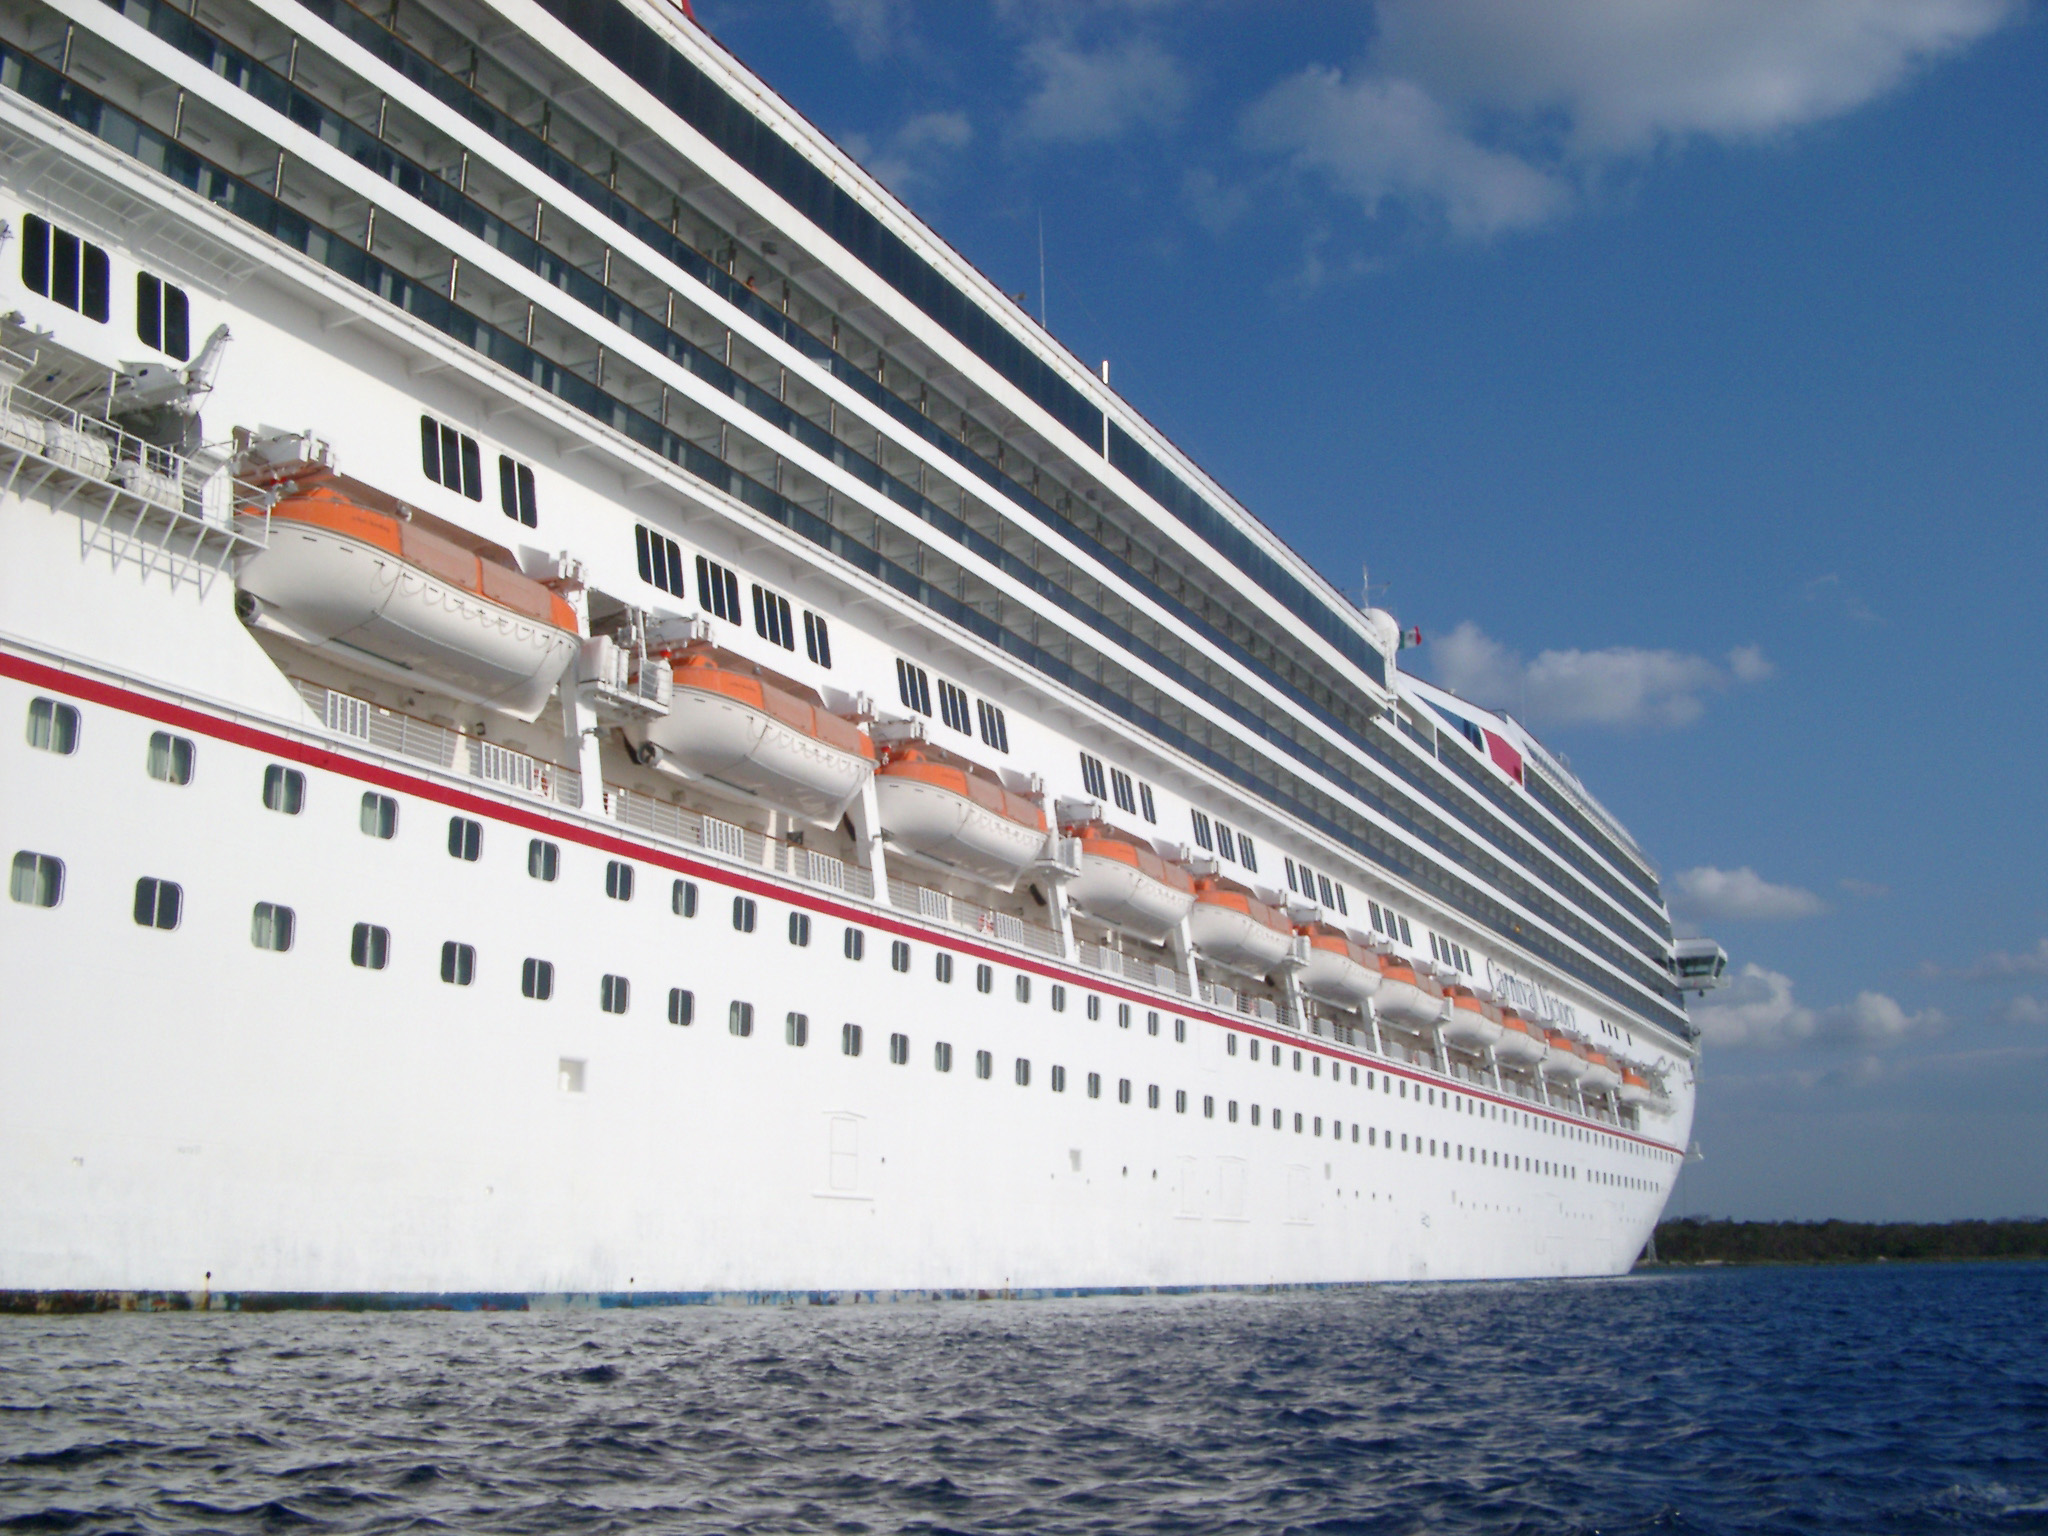 Side View Of A Cruise Ship Looking Down The Length Hull With Decks